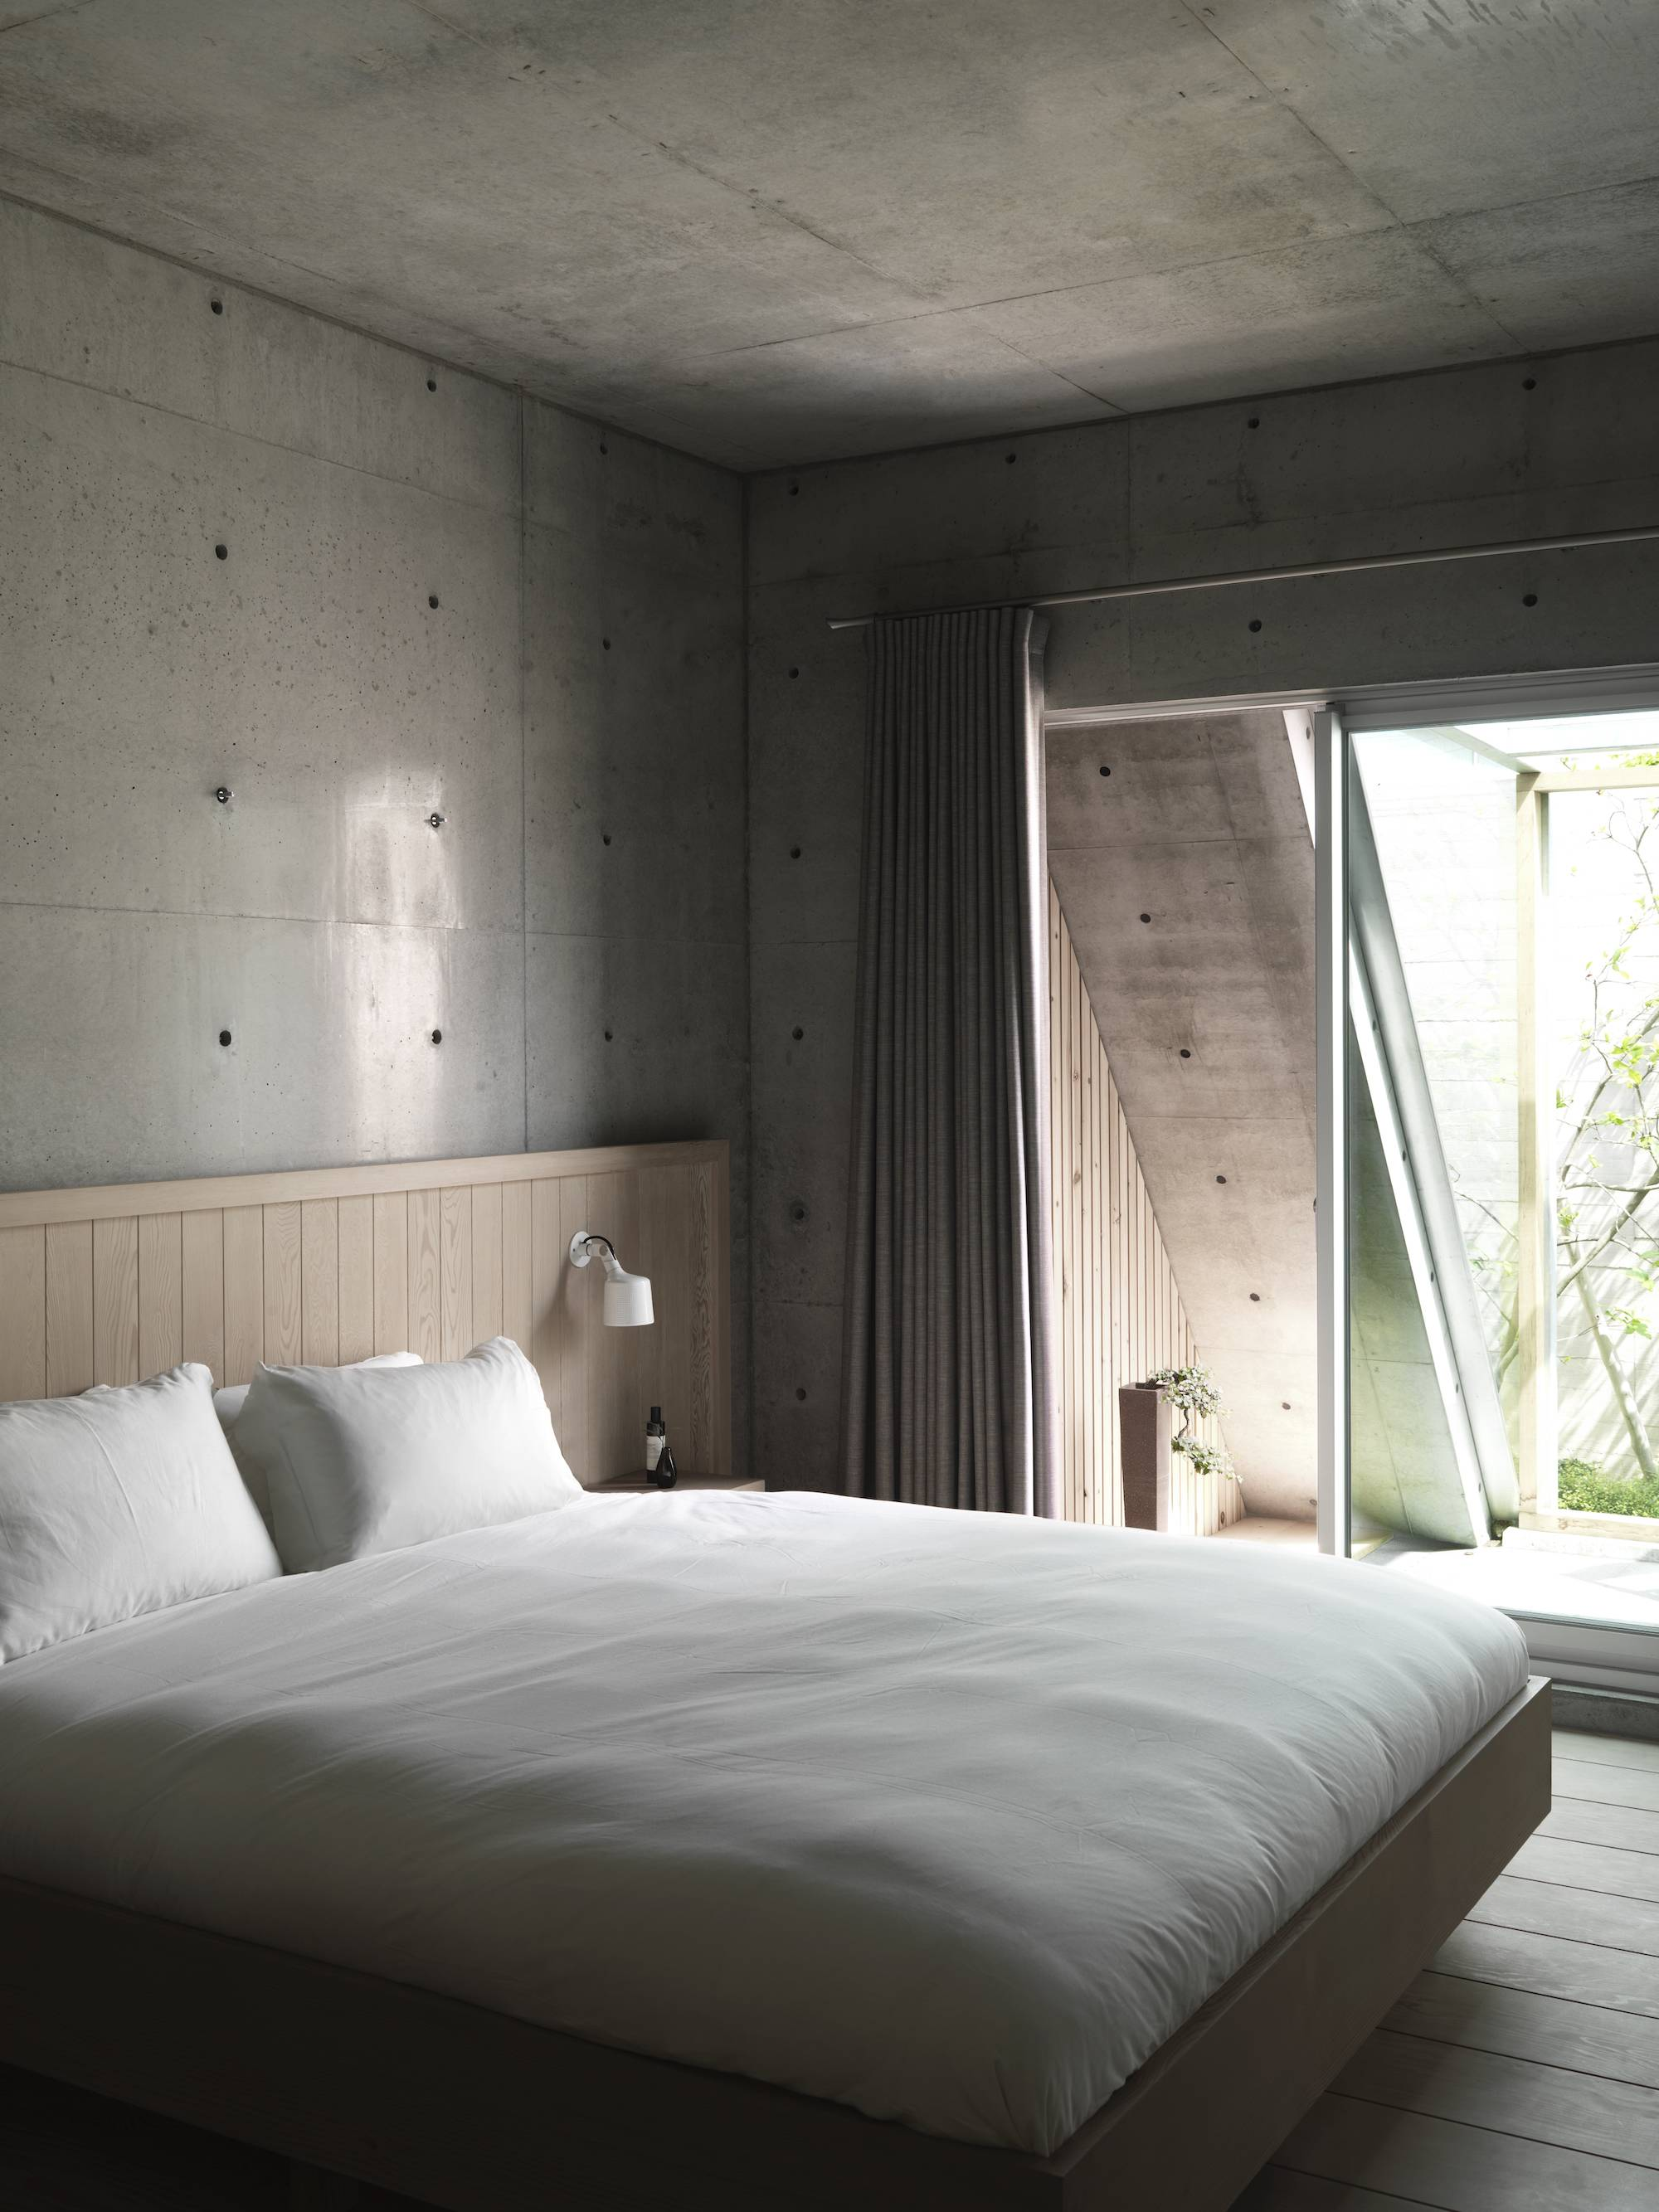 As in the rest of the house, the raw concrete contrasts with the natural wood in the bedroom and bathroom. The bespoke wooden bed was designed by Chiang with an integrated wall spot from Vipp.